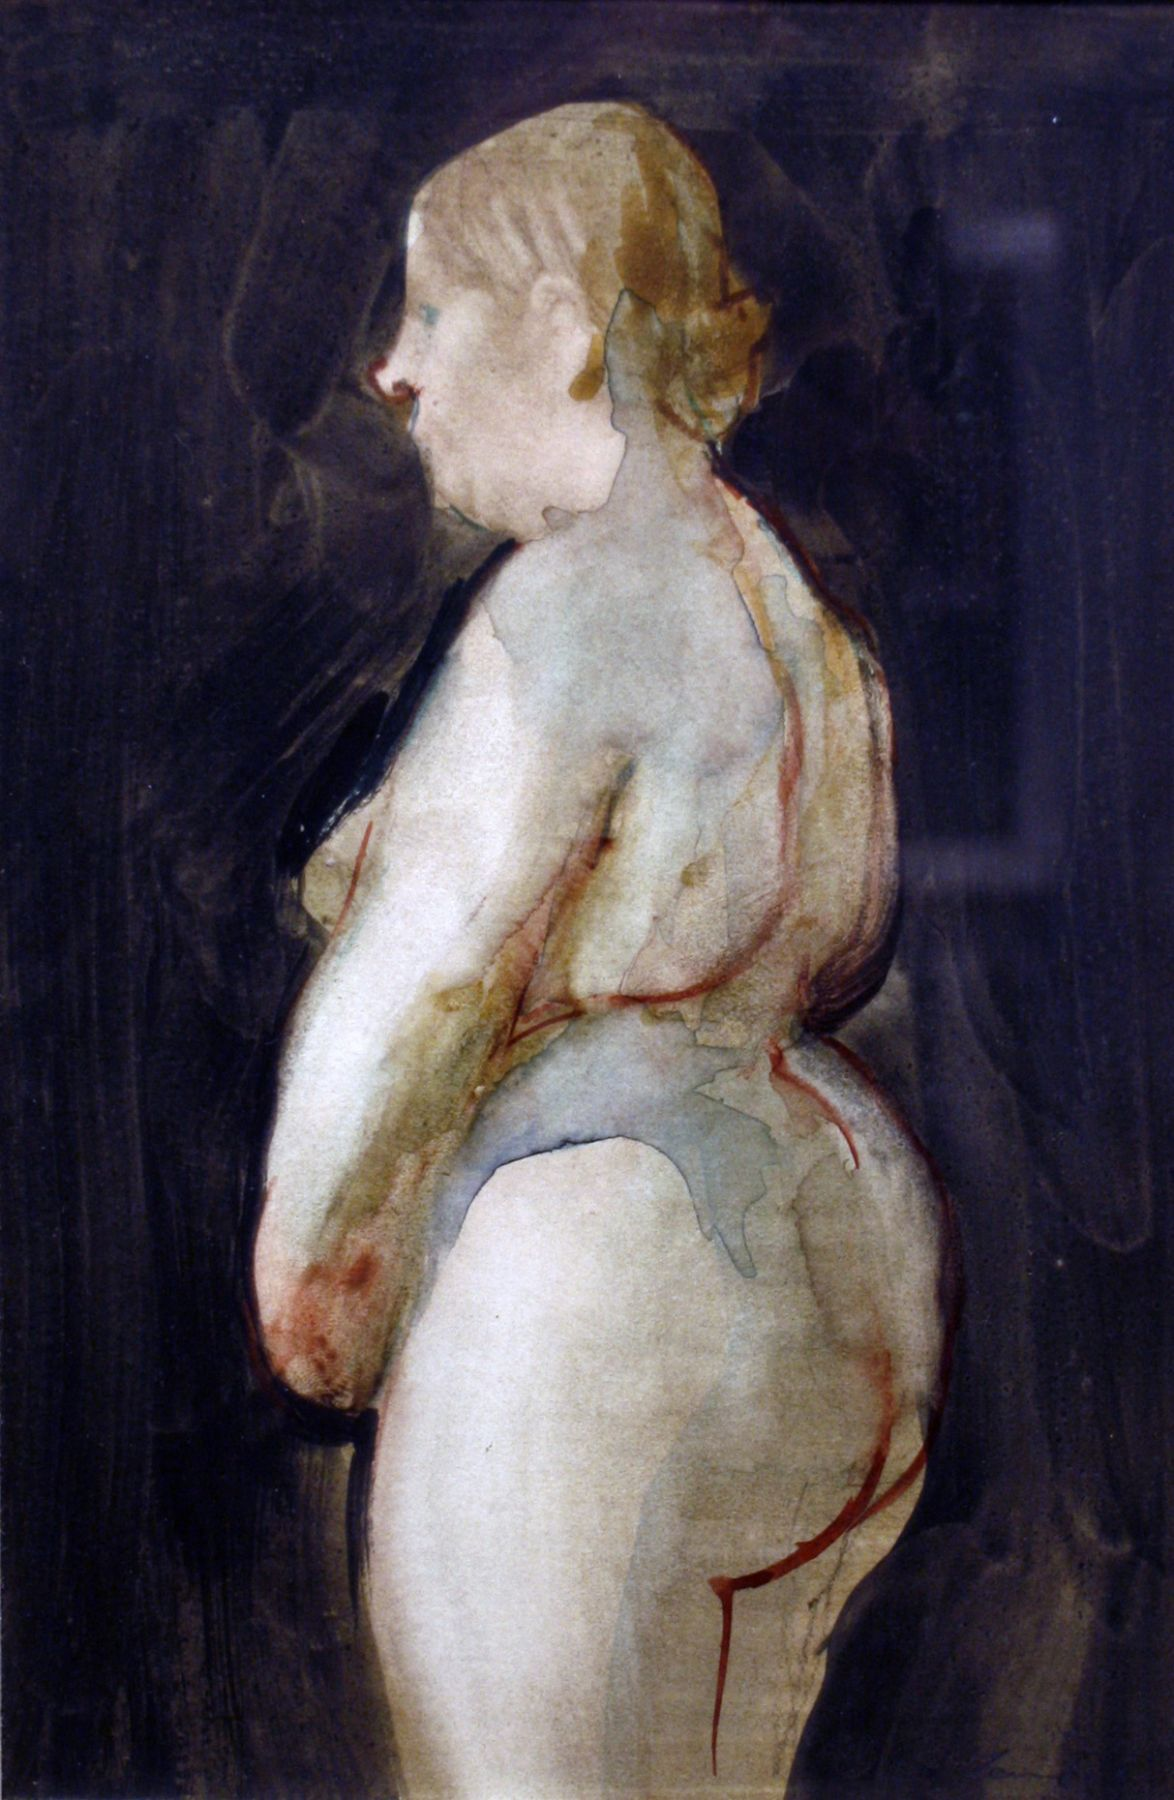 David Levine, Fat Nude, 1969, watercolor on paper, 10 1/2 x 7 inches